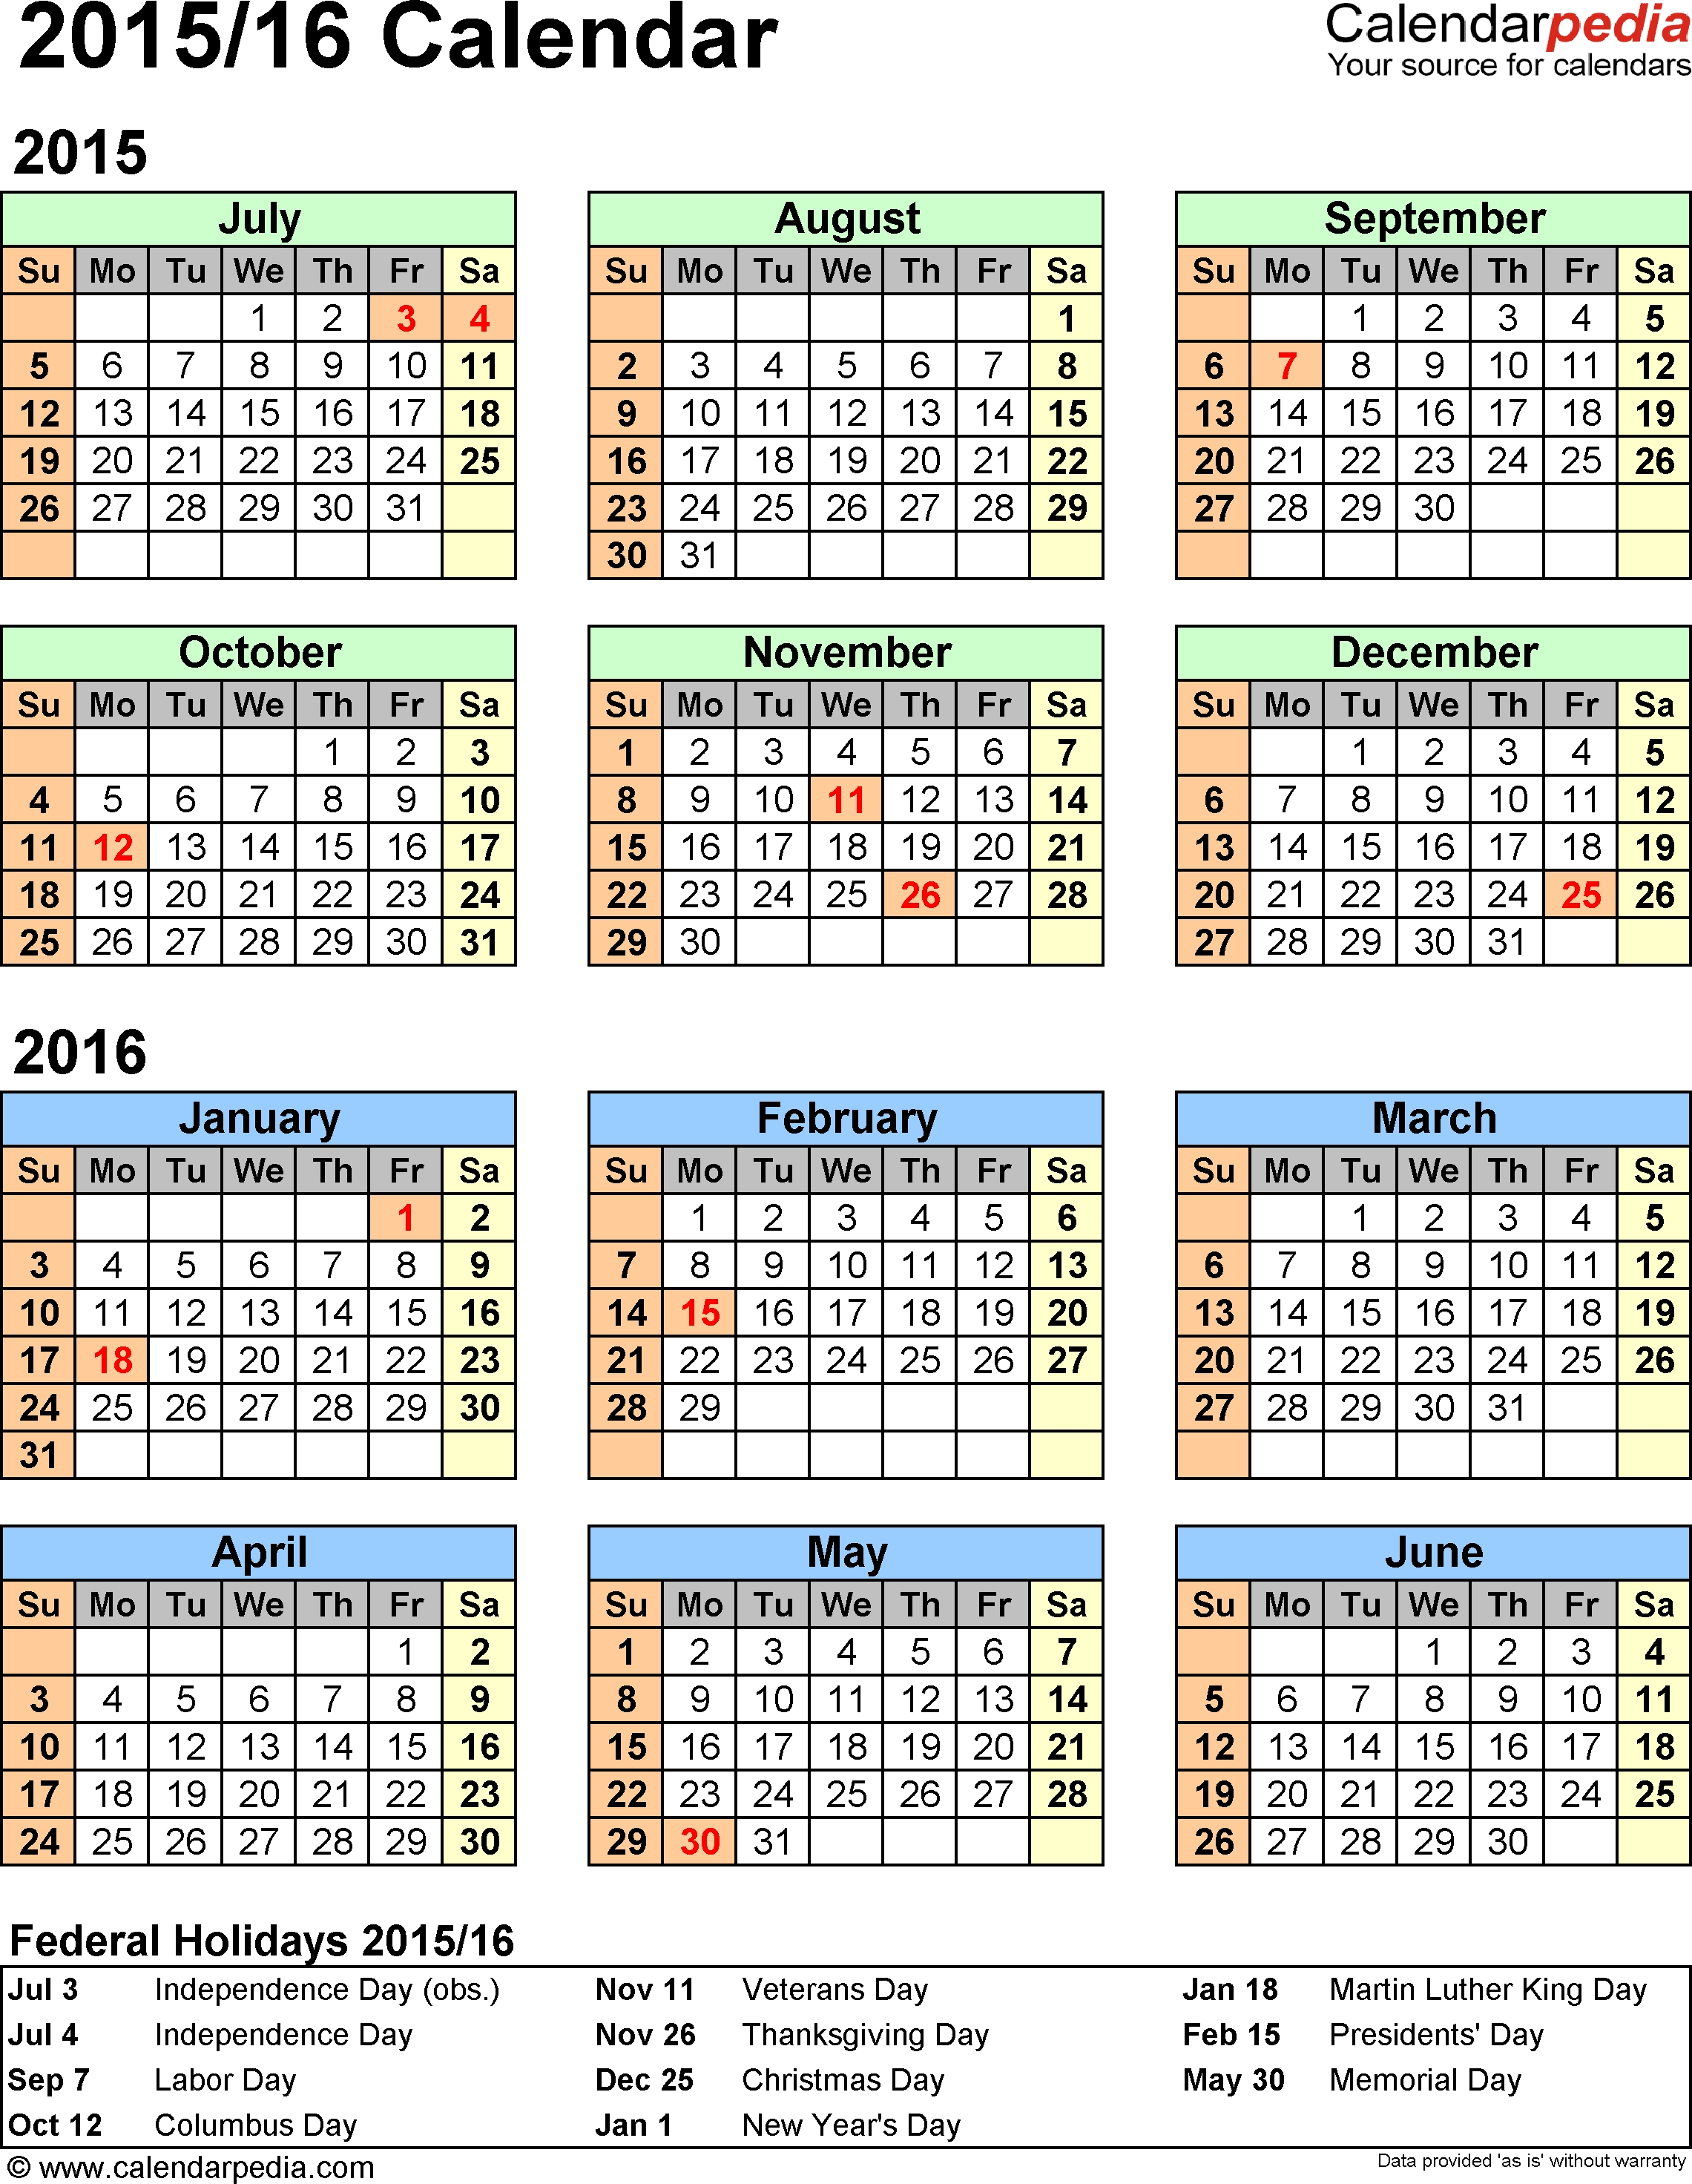 Split Year Calendar 2015/16 (July To June) - Pdf Templates  Australian Financial Year From When To When